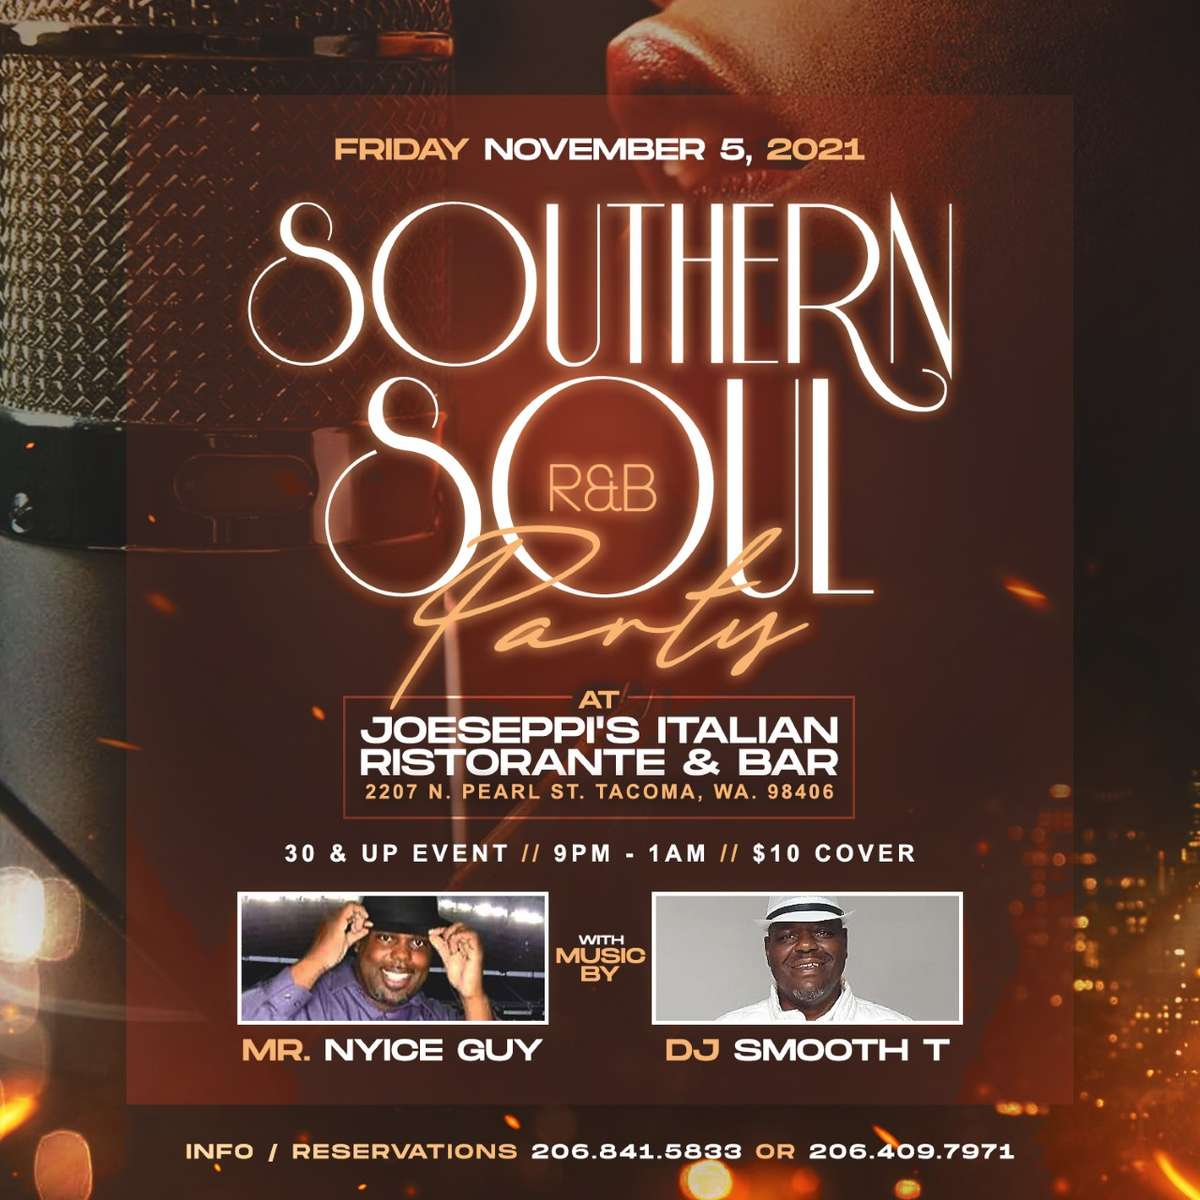 SOUTHERN SOUL PARTY live at Piacere, the Lounge at Joeseppi's Italian Ristorante in Tacoma, WA